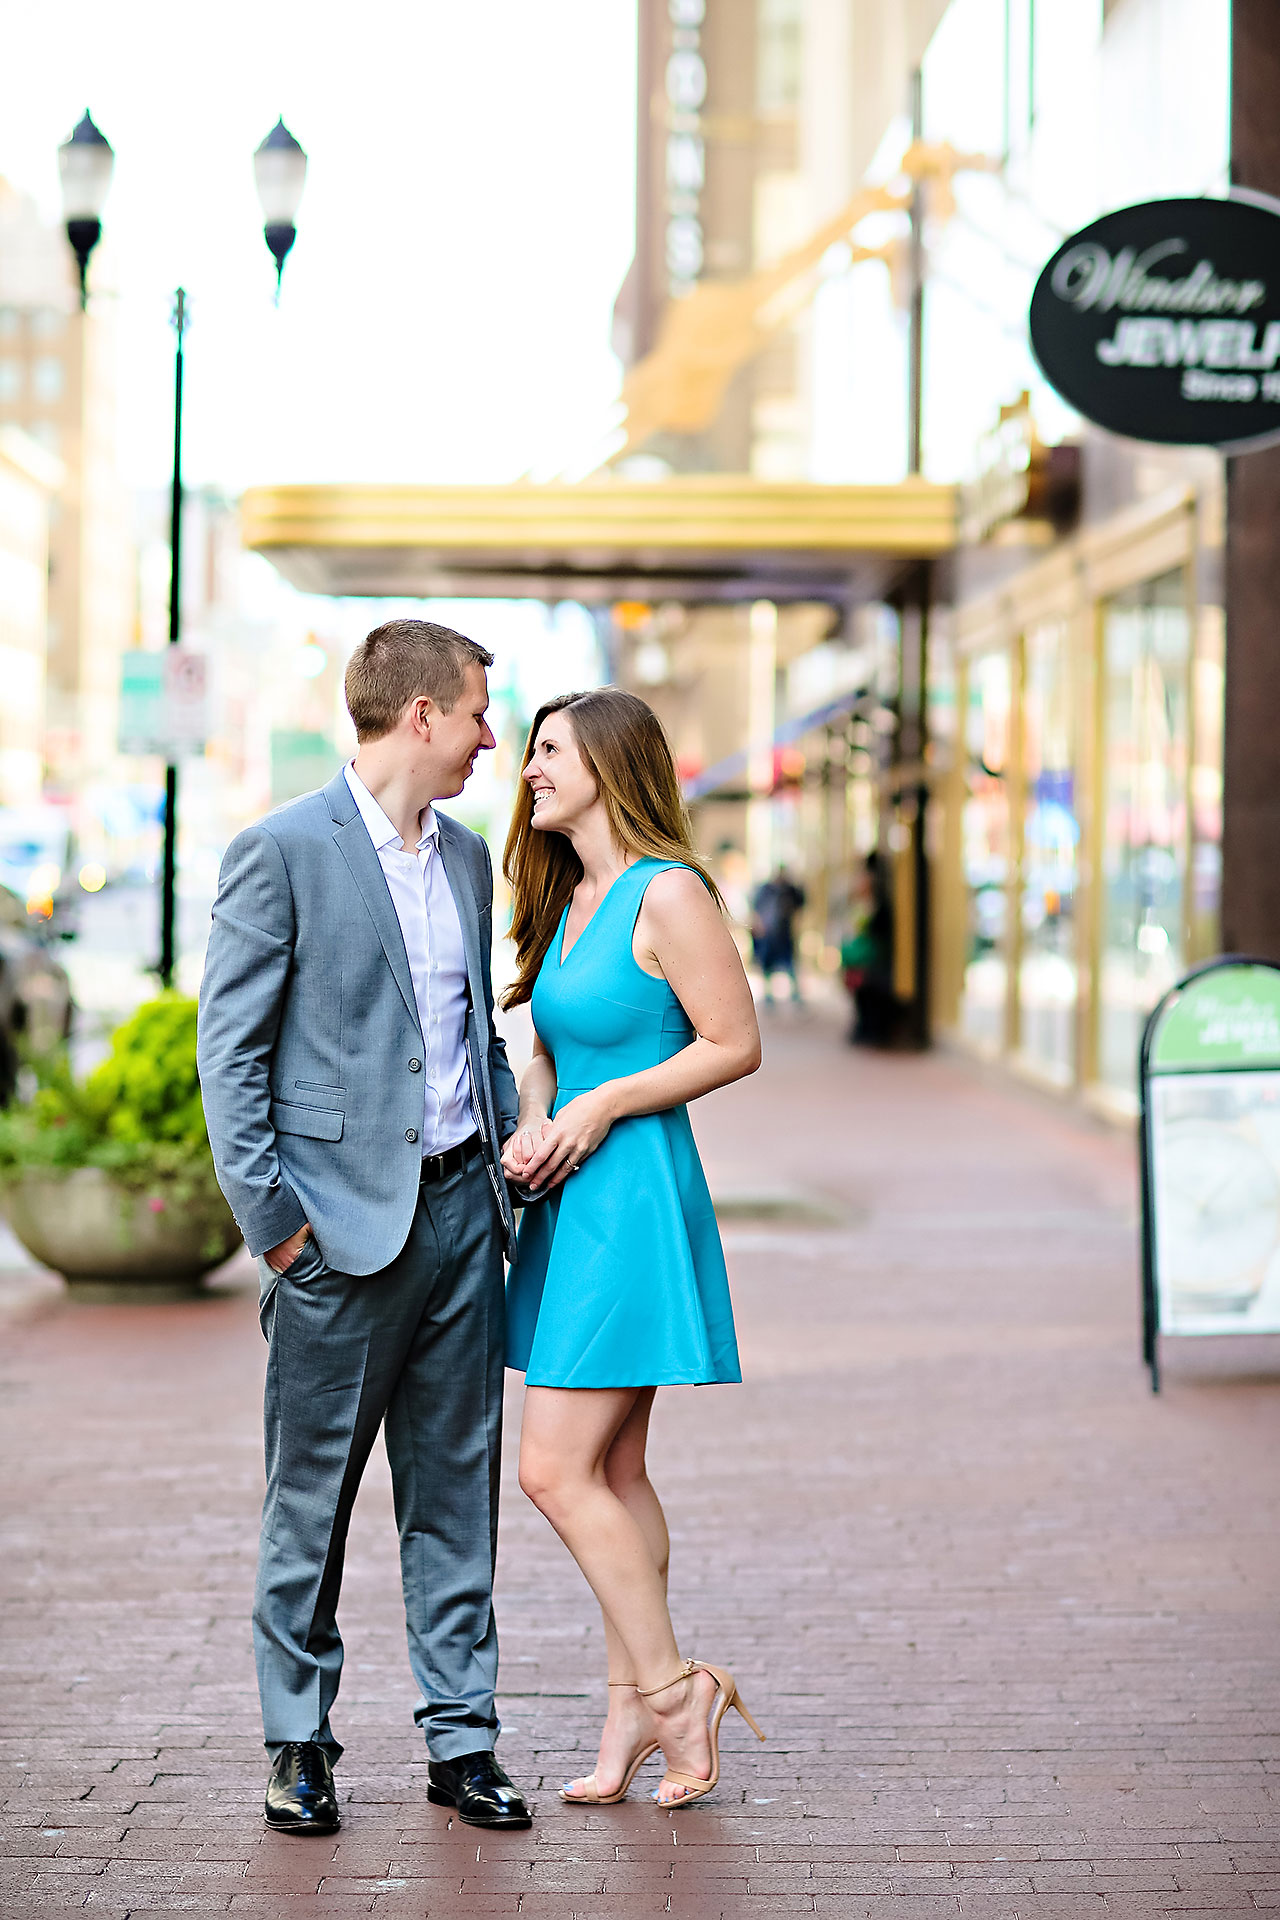 Chelsea Jeff Downtown Indy Engagement Session 031